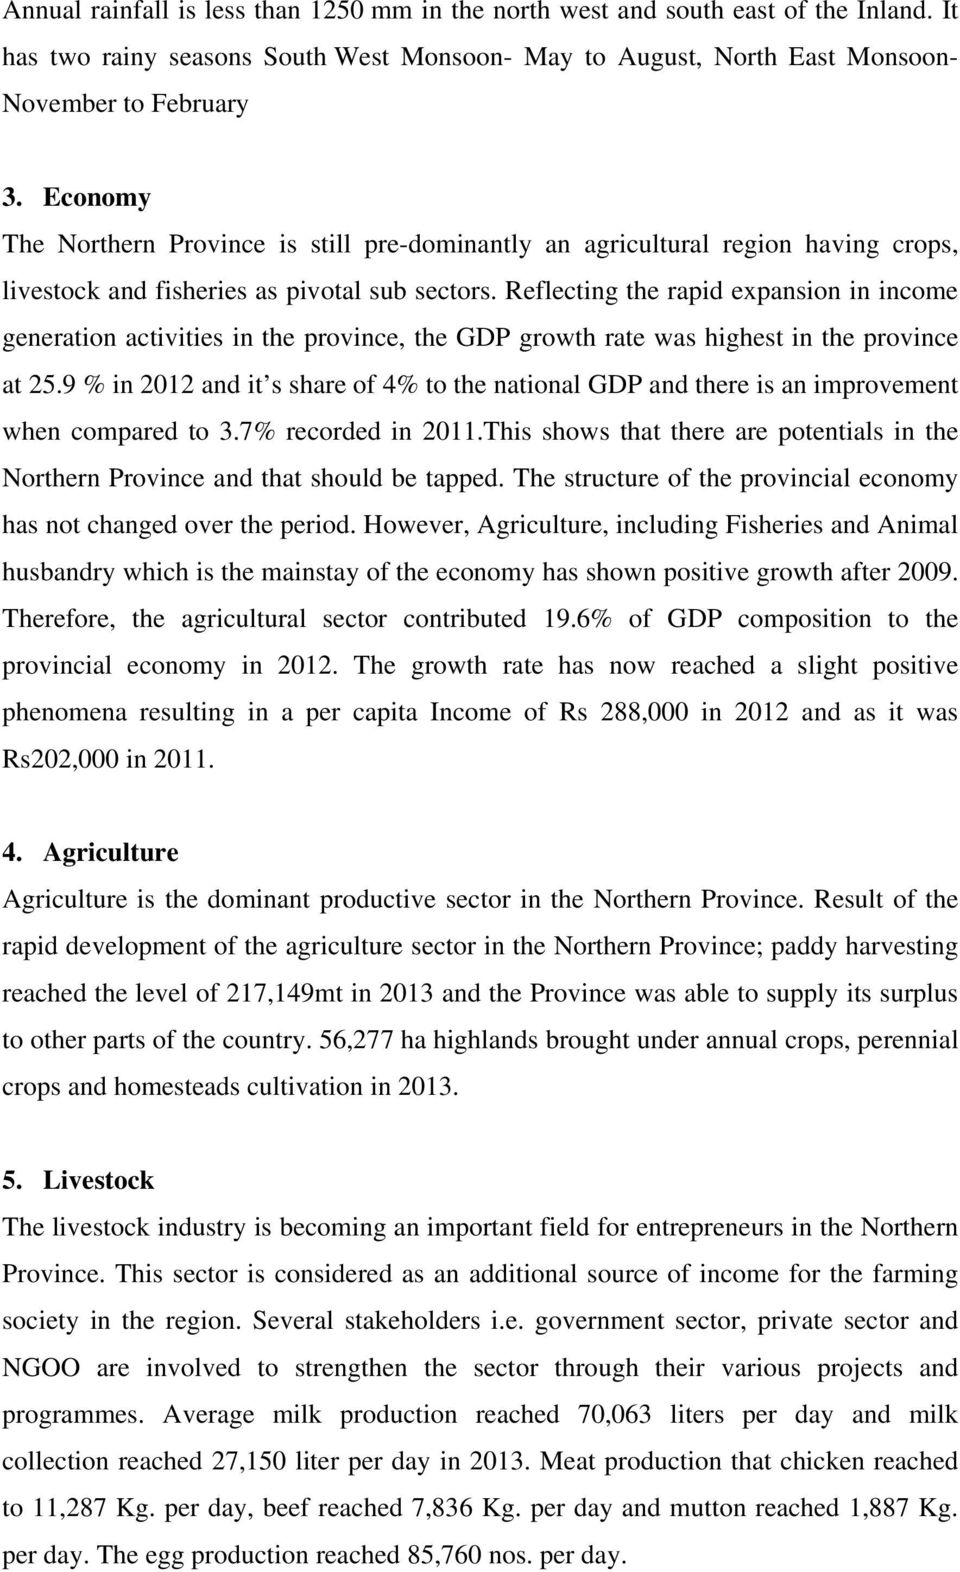 STATISTICAL INFORMATION OF THE NORTHERN PROVINCE - PDF